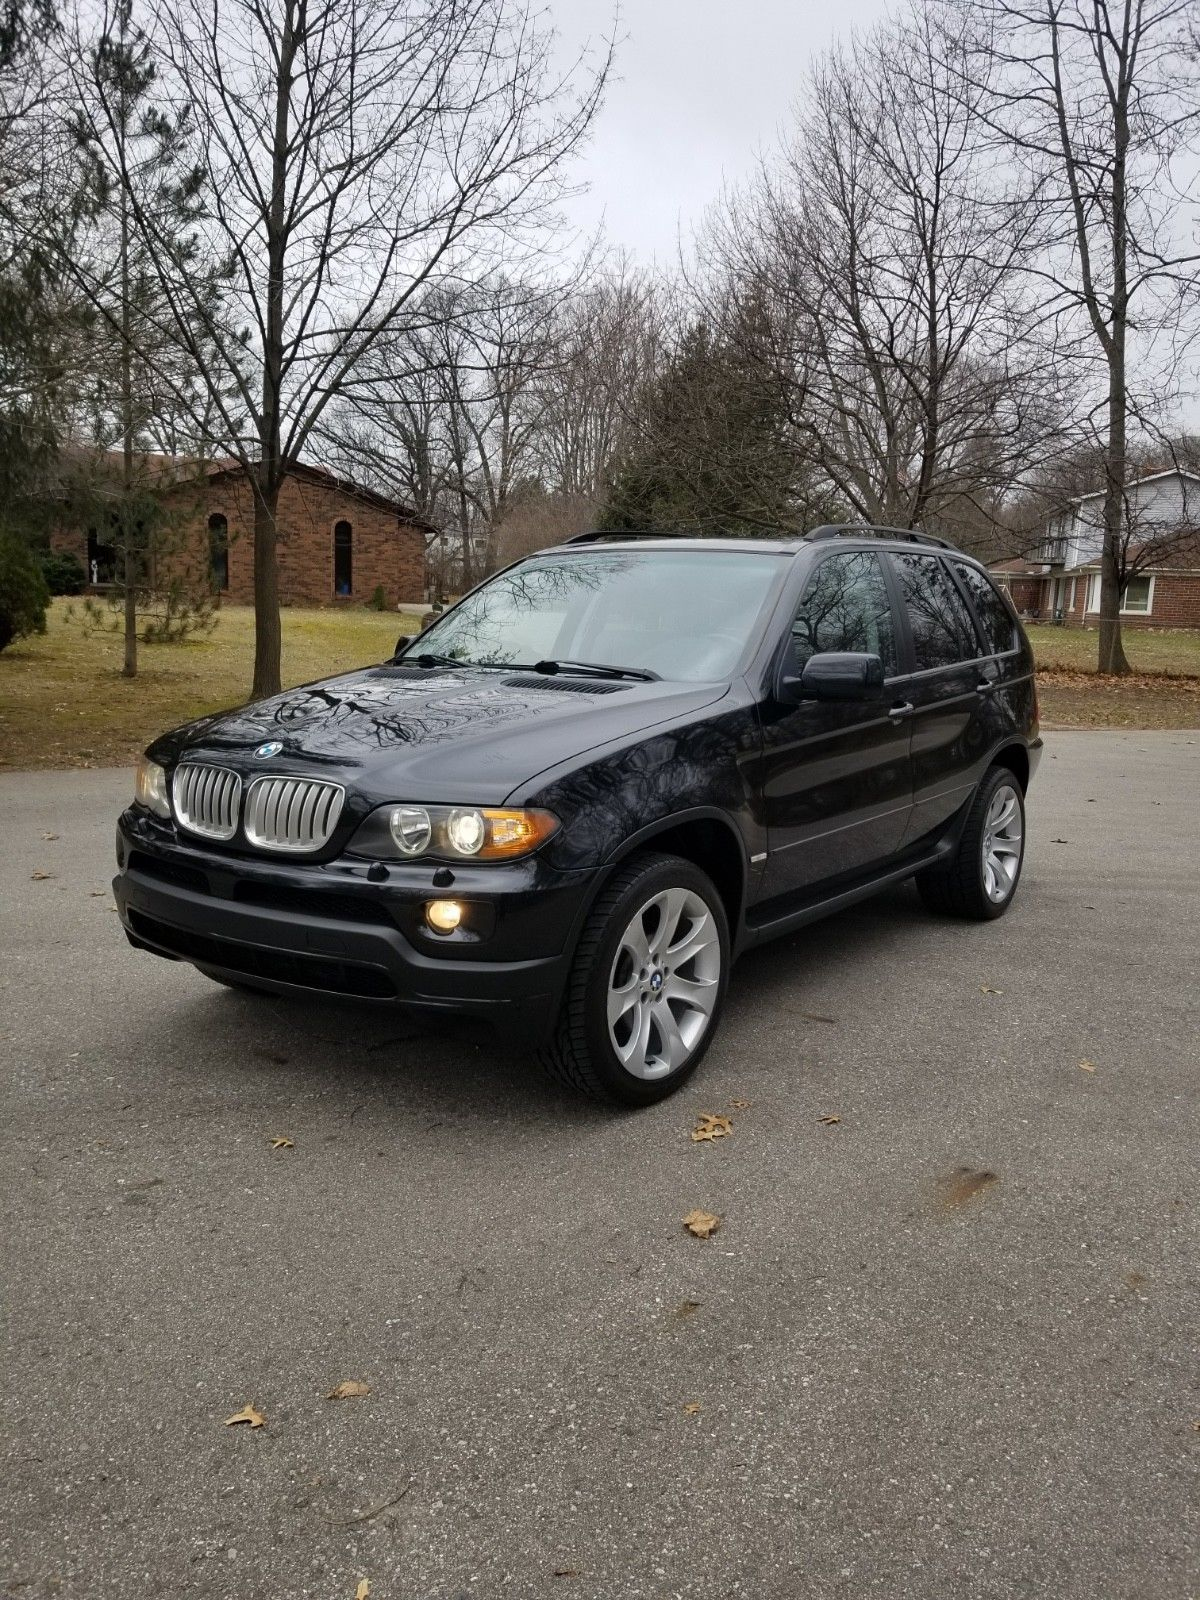 hight resolution of 2006 bmw x5 holy grail last year e53 6 speed manual loaded 2006 bmw x5